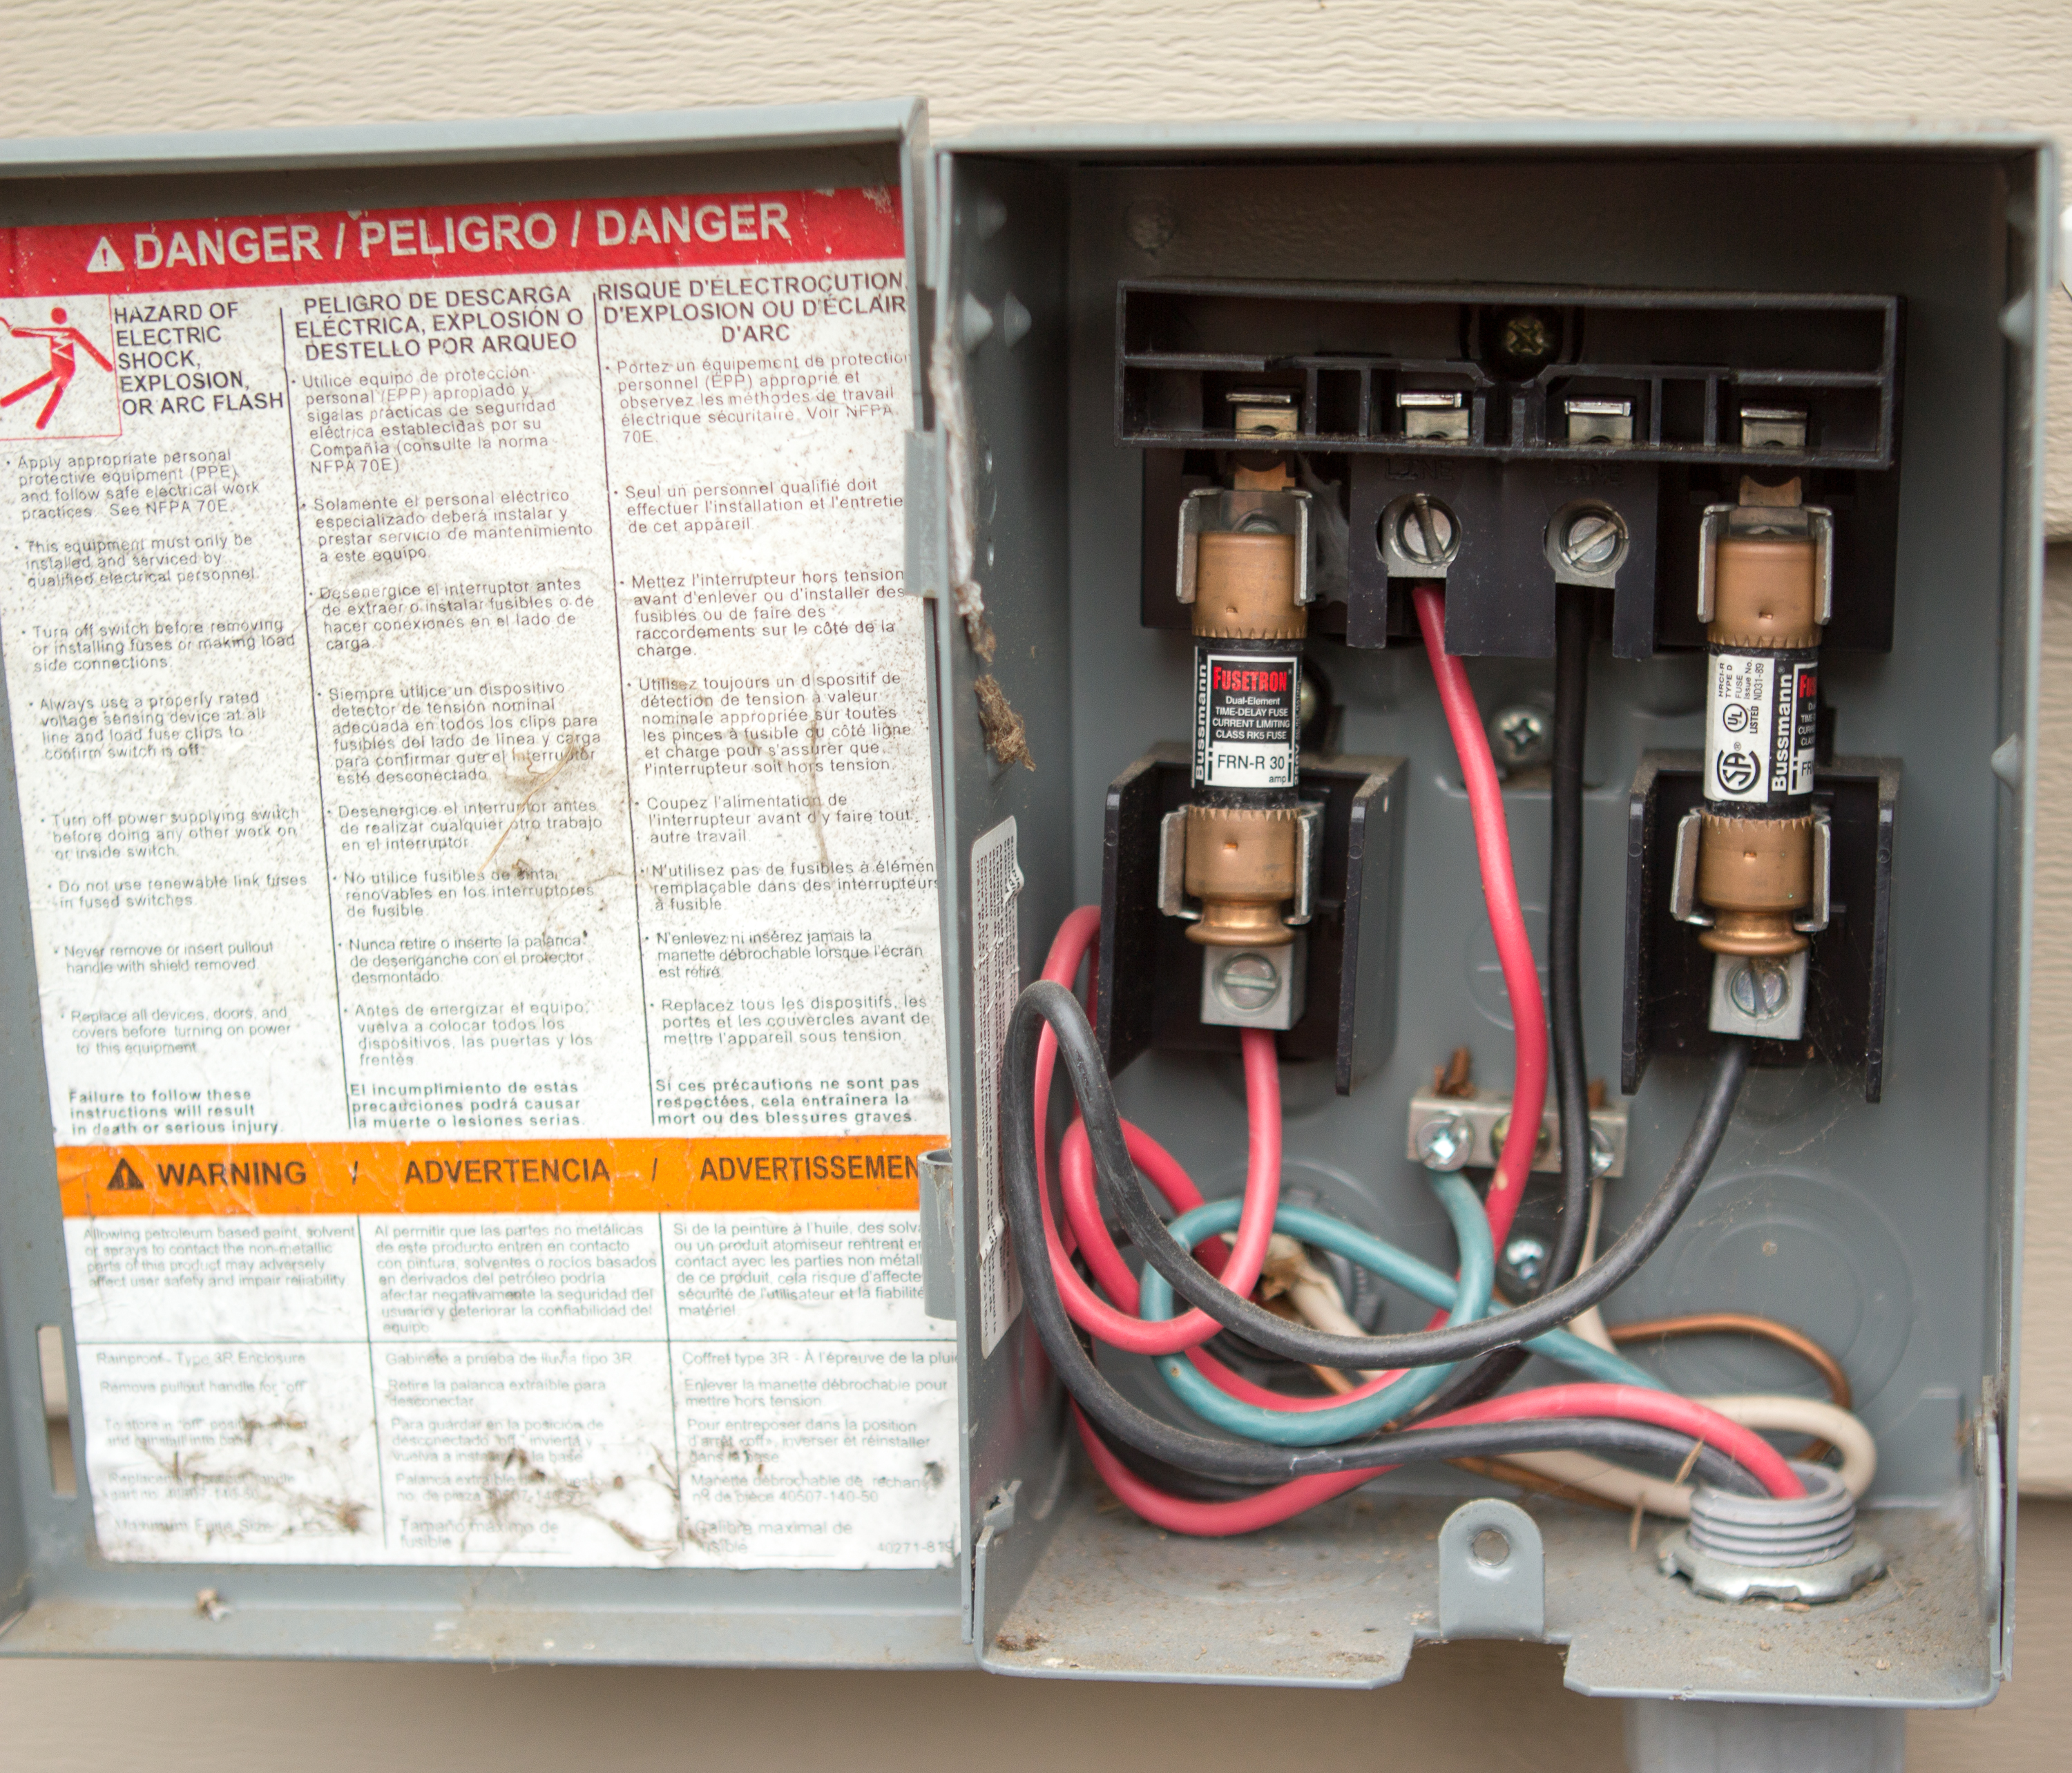 Ac Fuse Box Wiring - Wiring Diagram point brief-answer -  brief-answer.lauragiustibijoux.it | Hvac Fuse Box Wiring |  | Laura Giusti Bijoux